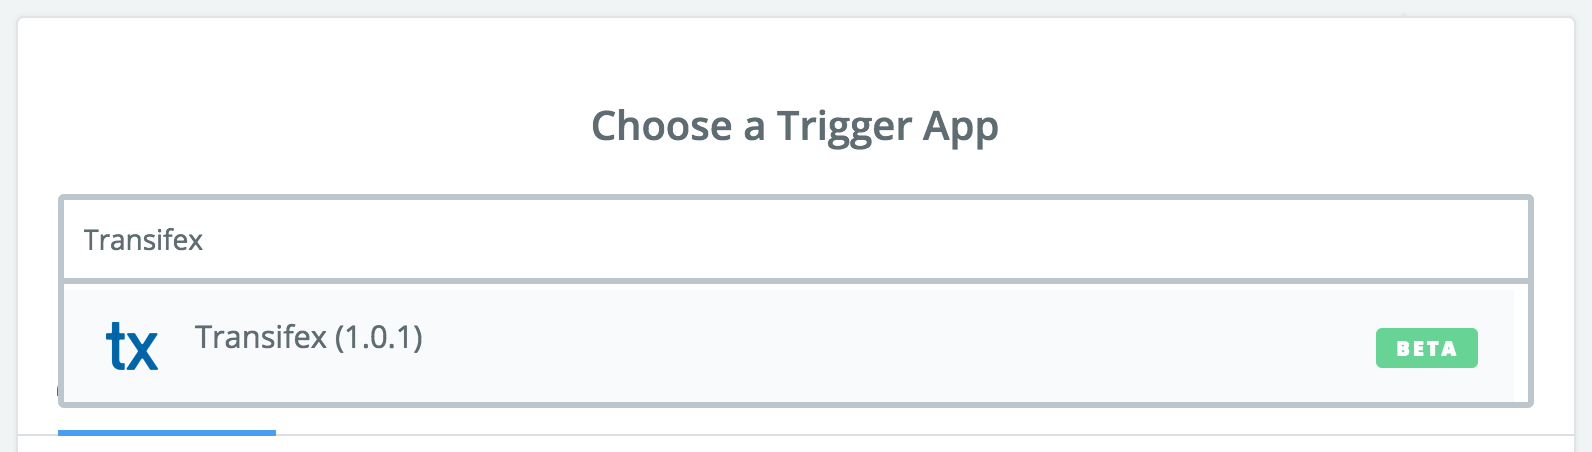 zapier-choose-trigger-app.png#asset:3840